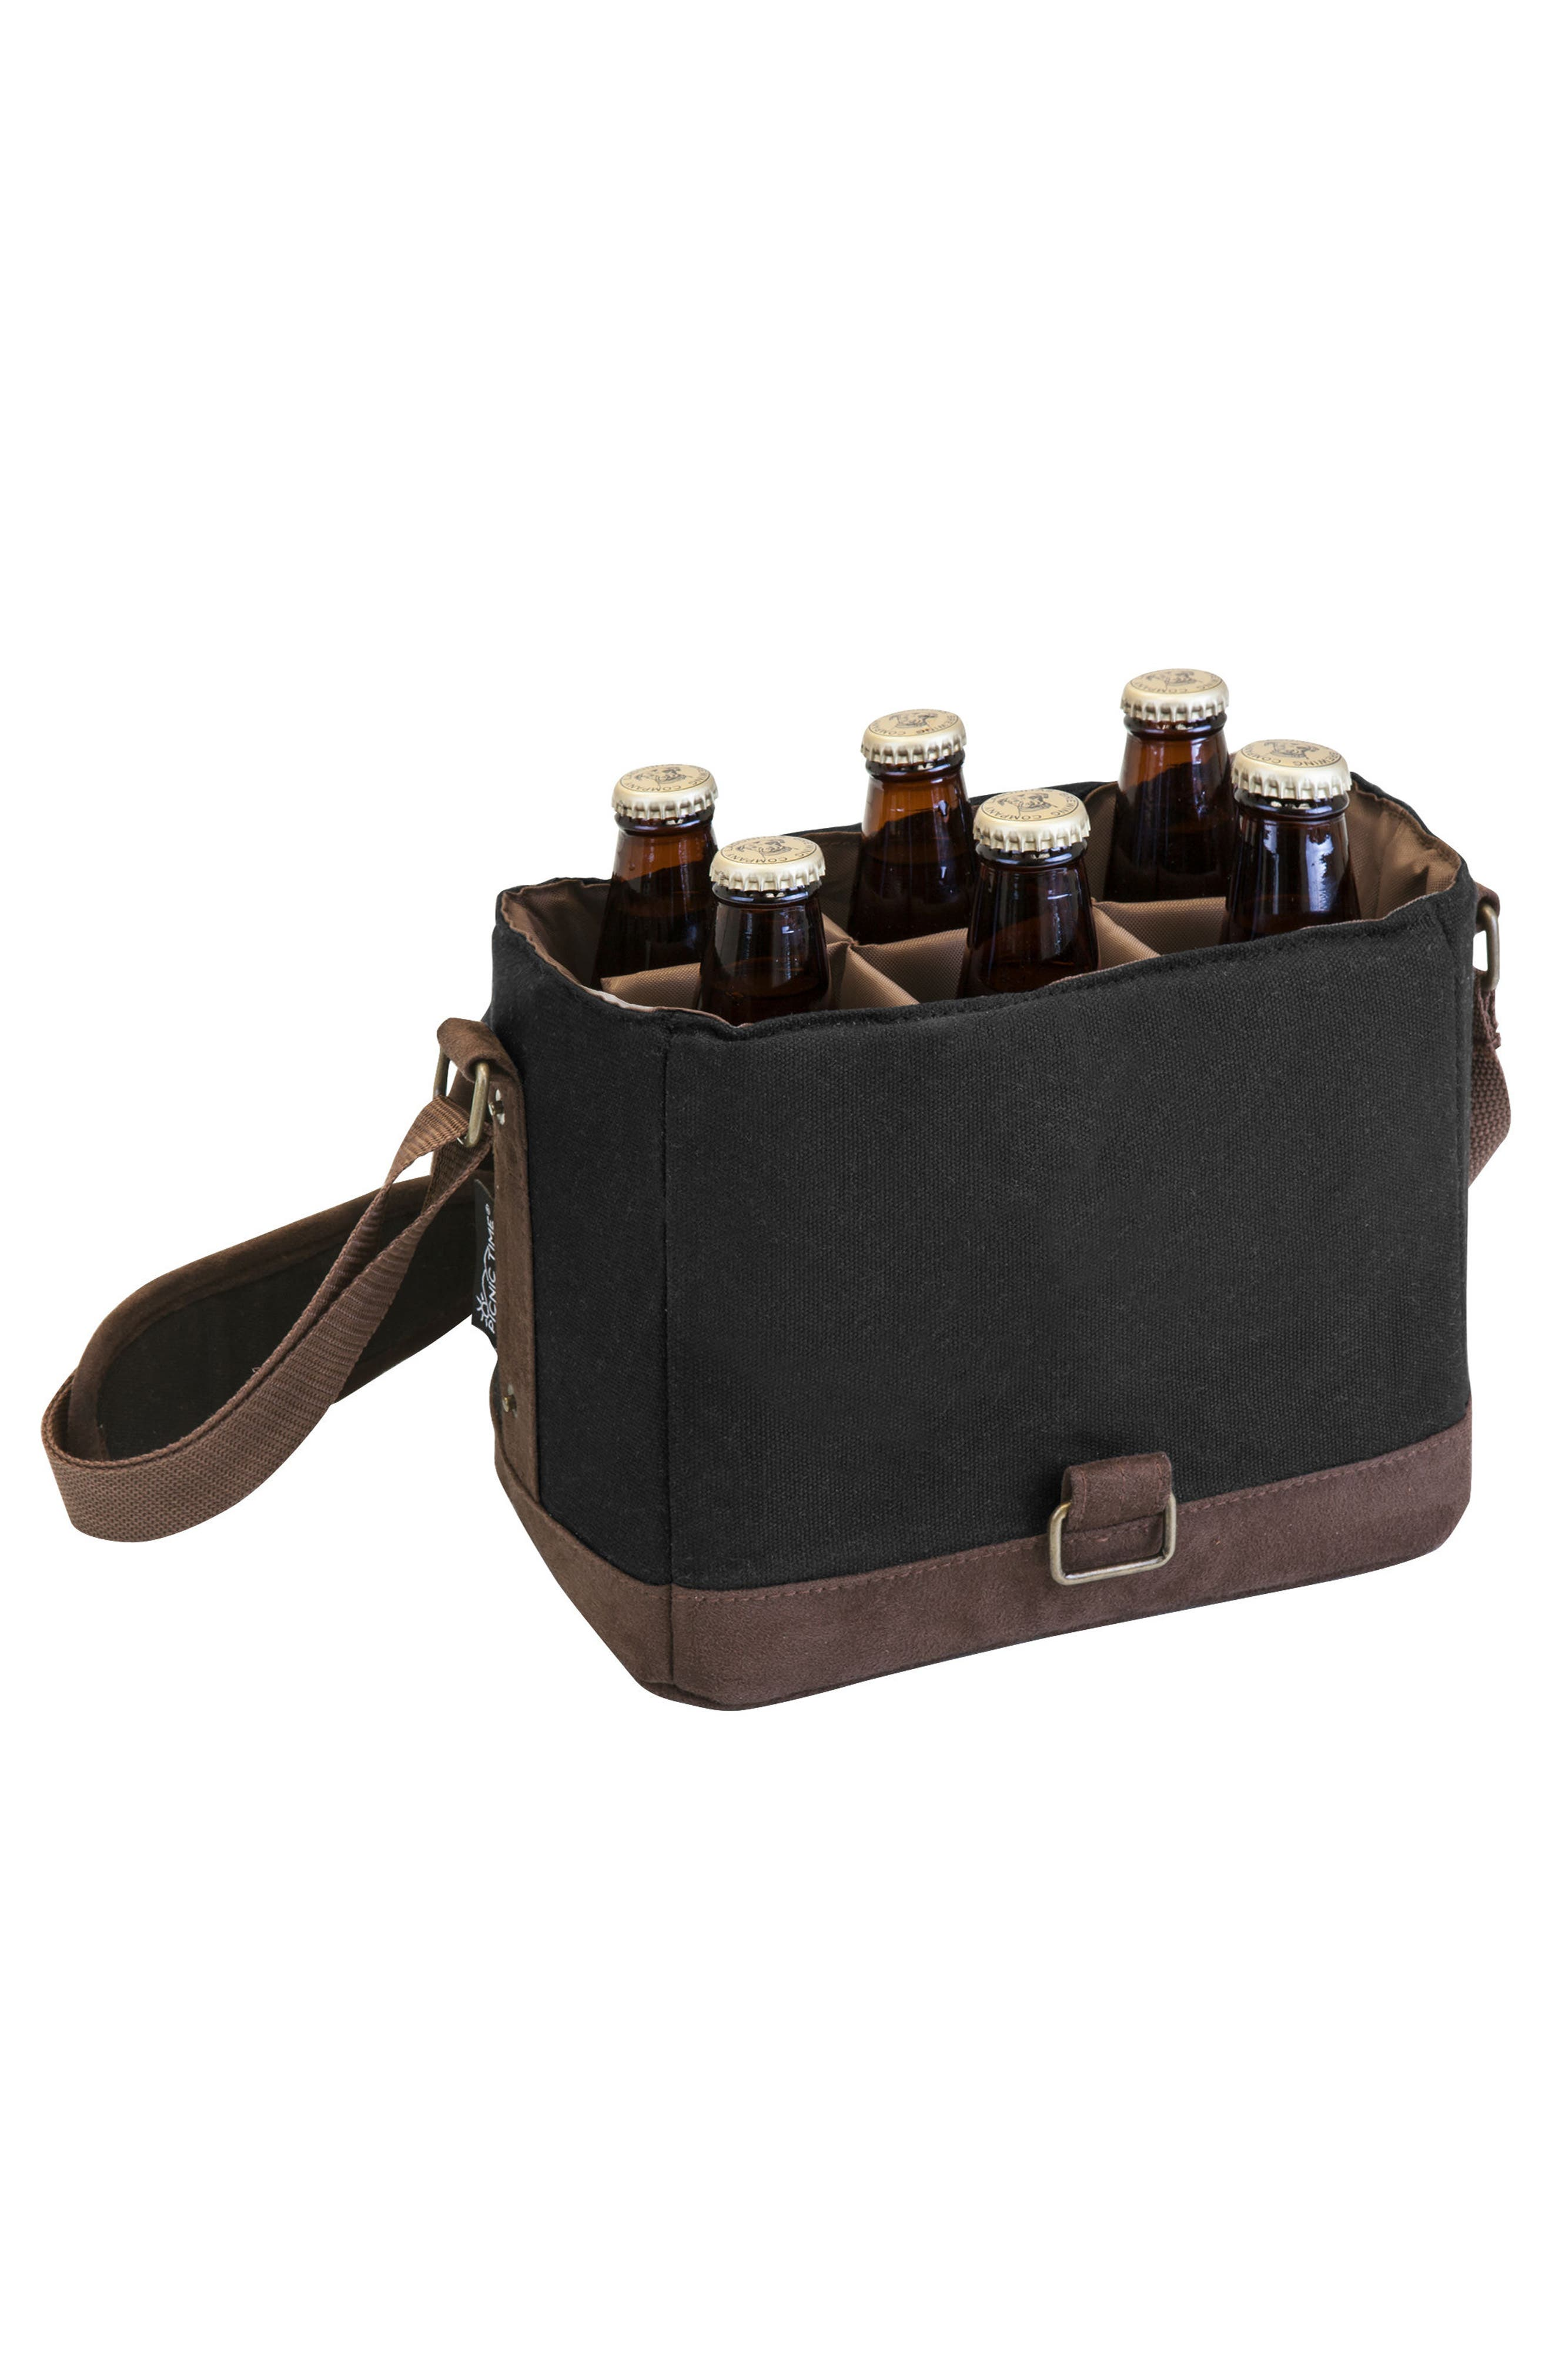 Alternate Image 3  - Picnic Time Beer Caddy Cooler Tote